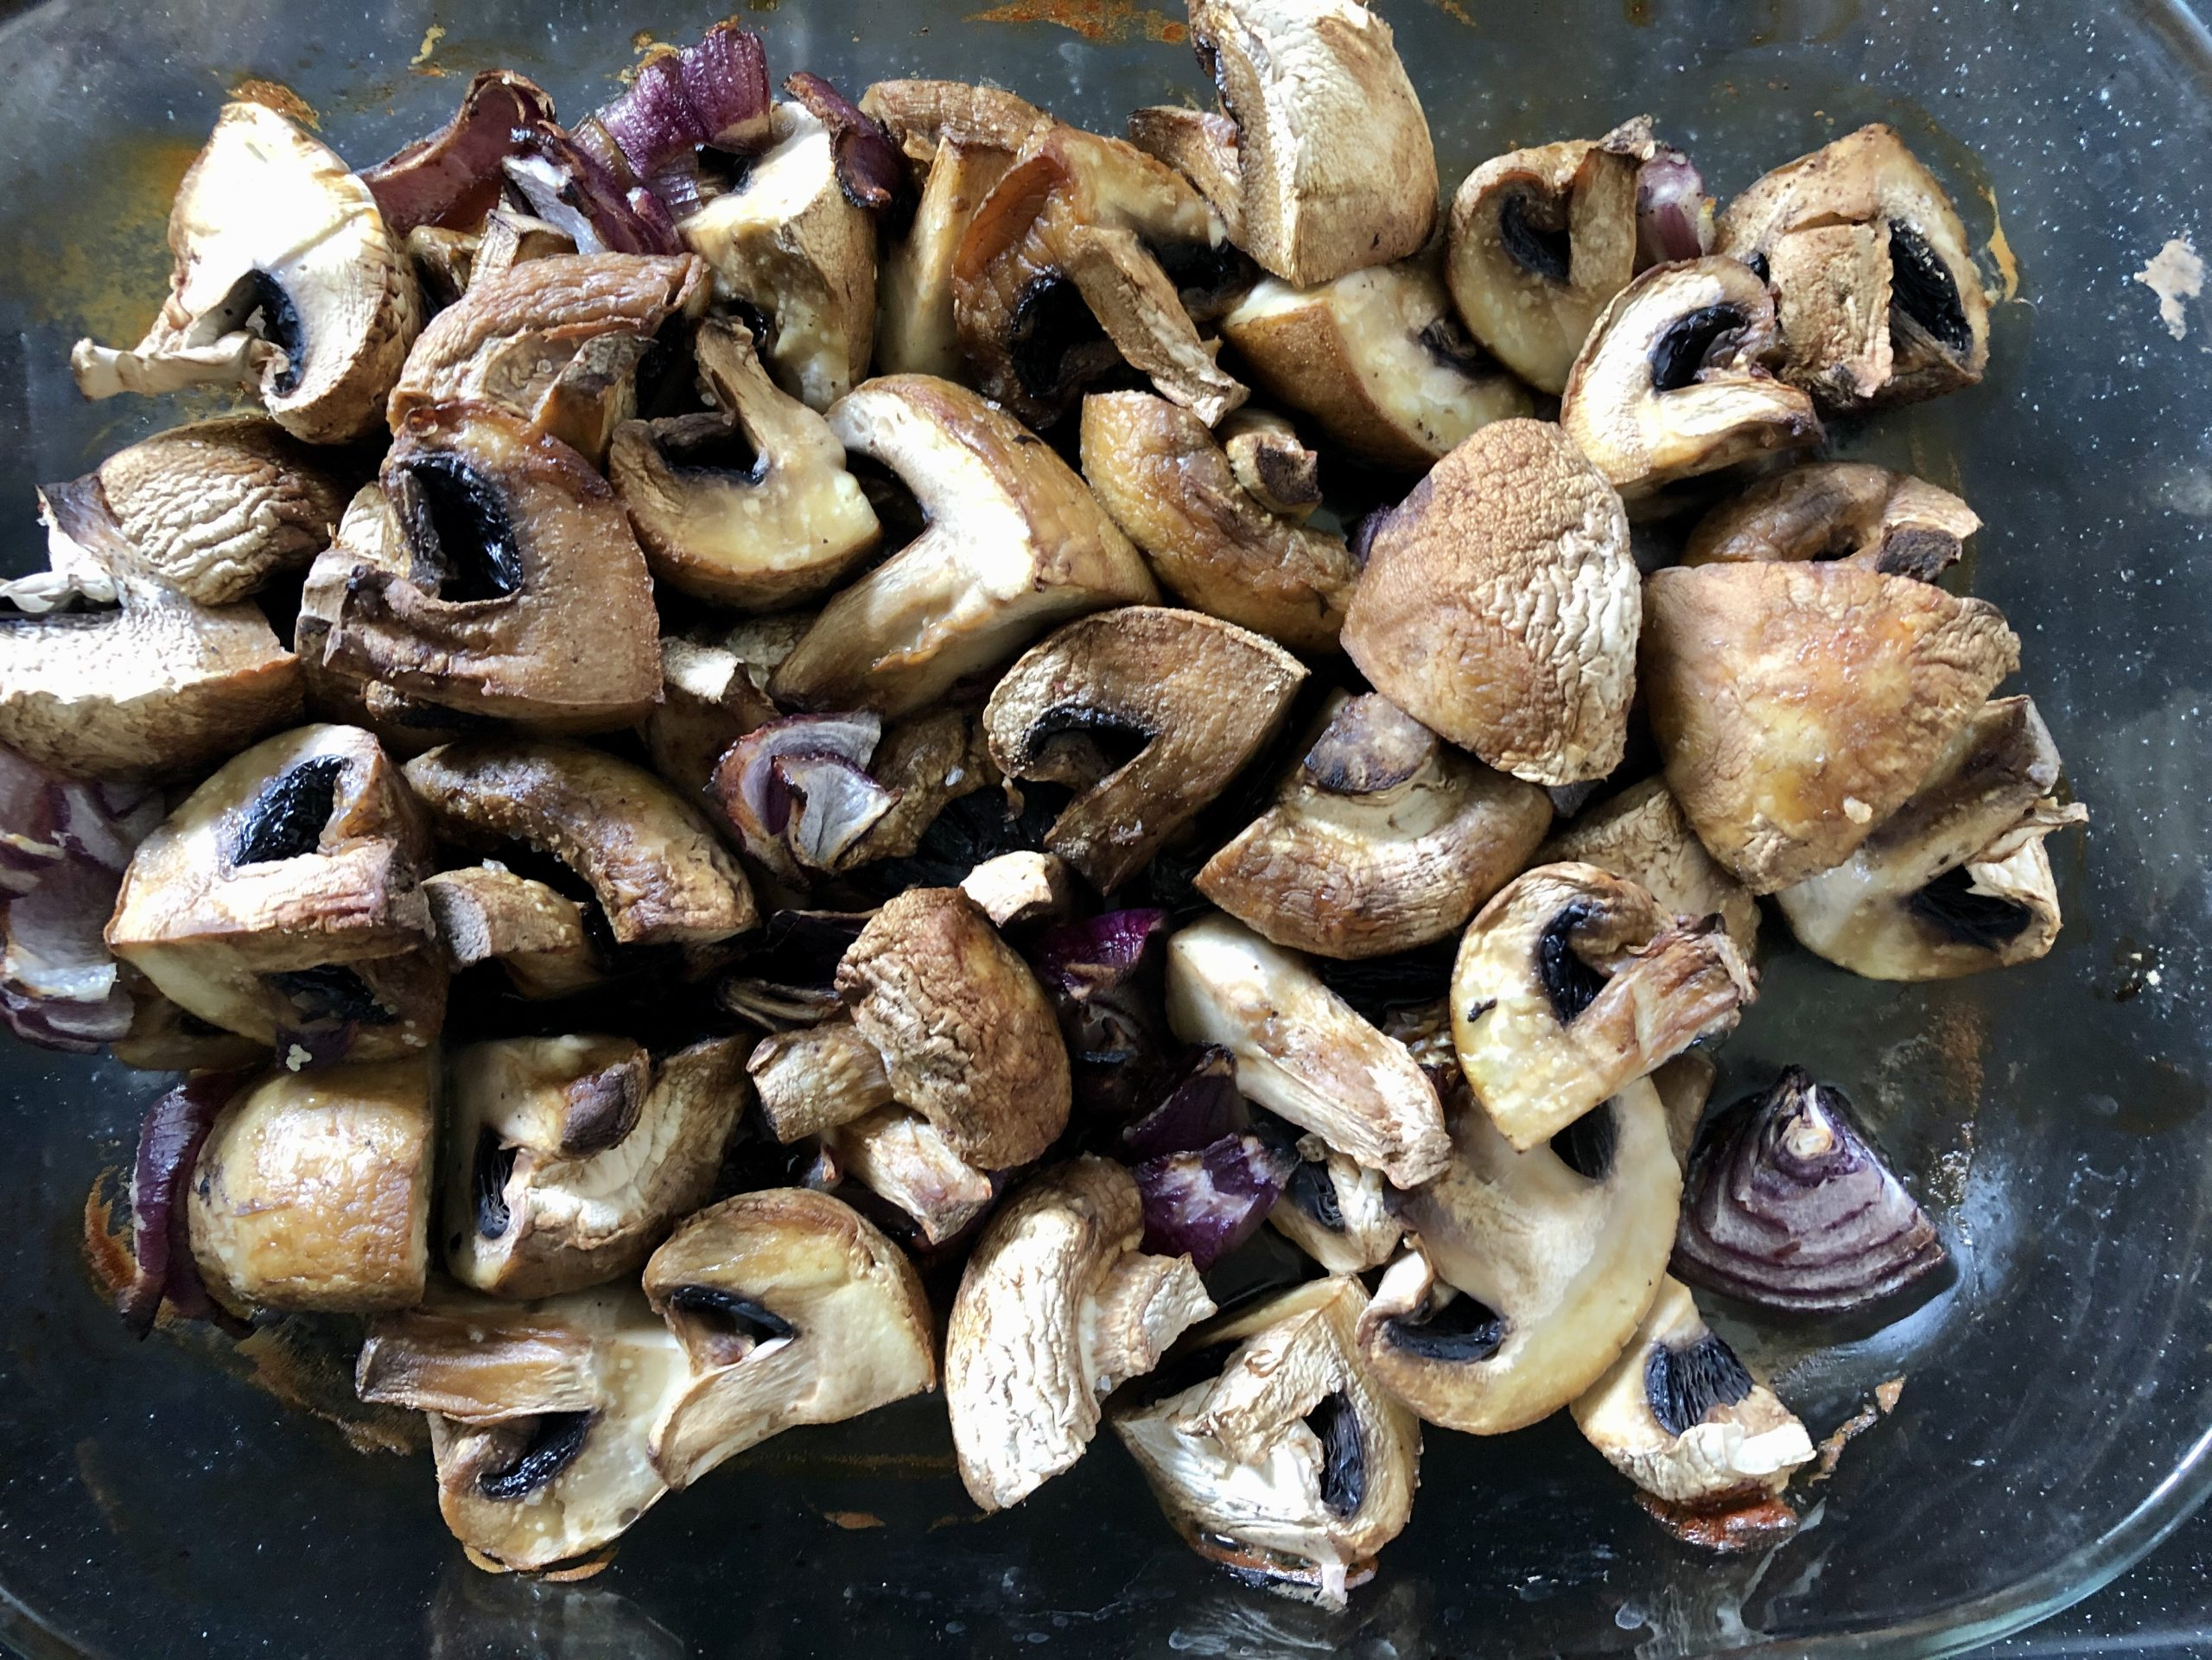 Roast mushrooms in the oven